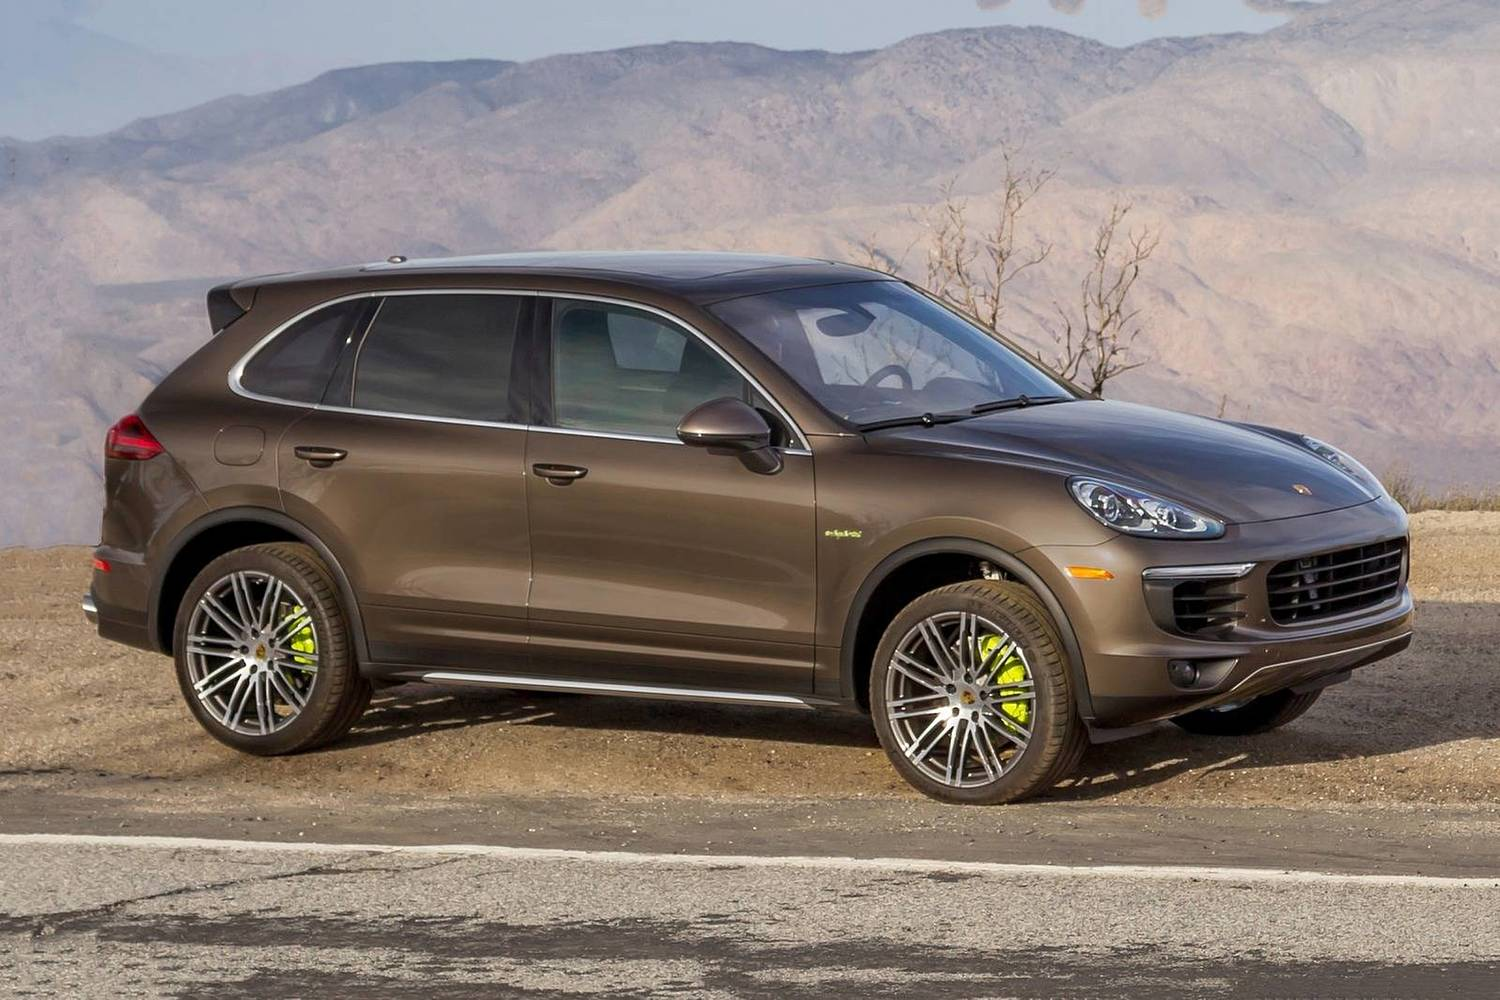 2018 porsche cayenne suv hybrid vehie. Black Bedroom Furniture Sets. Home Design Ideas